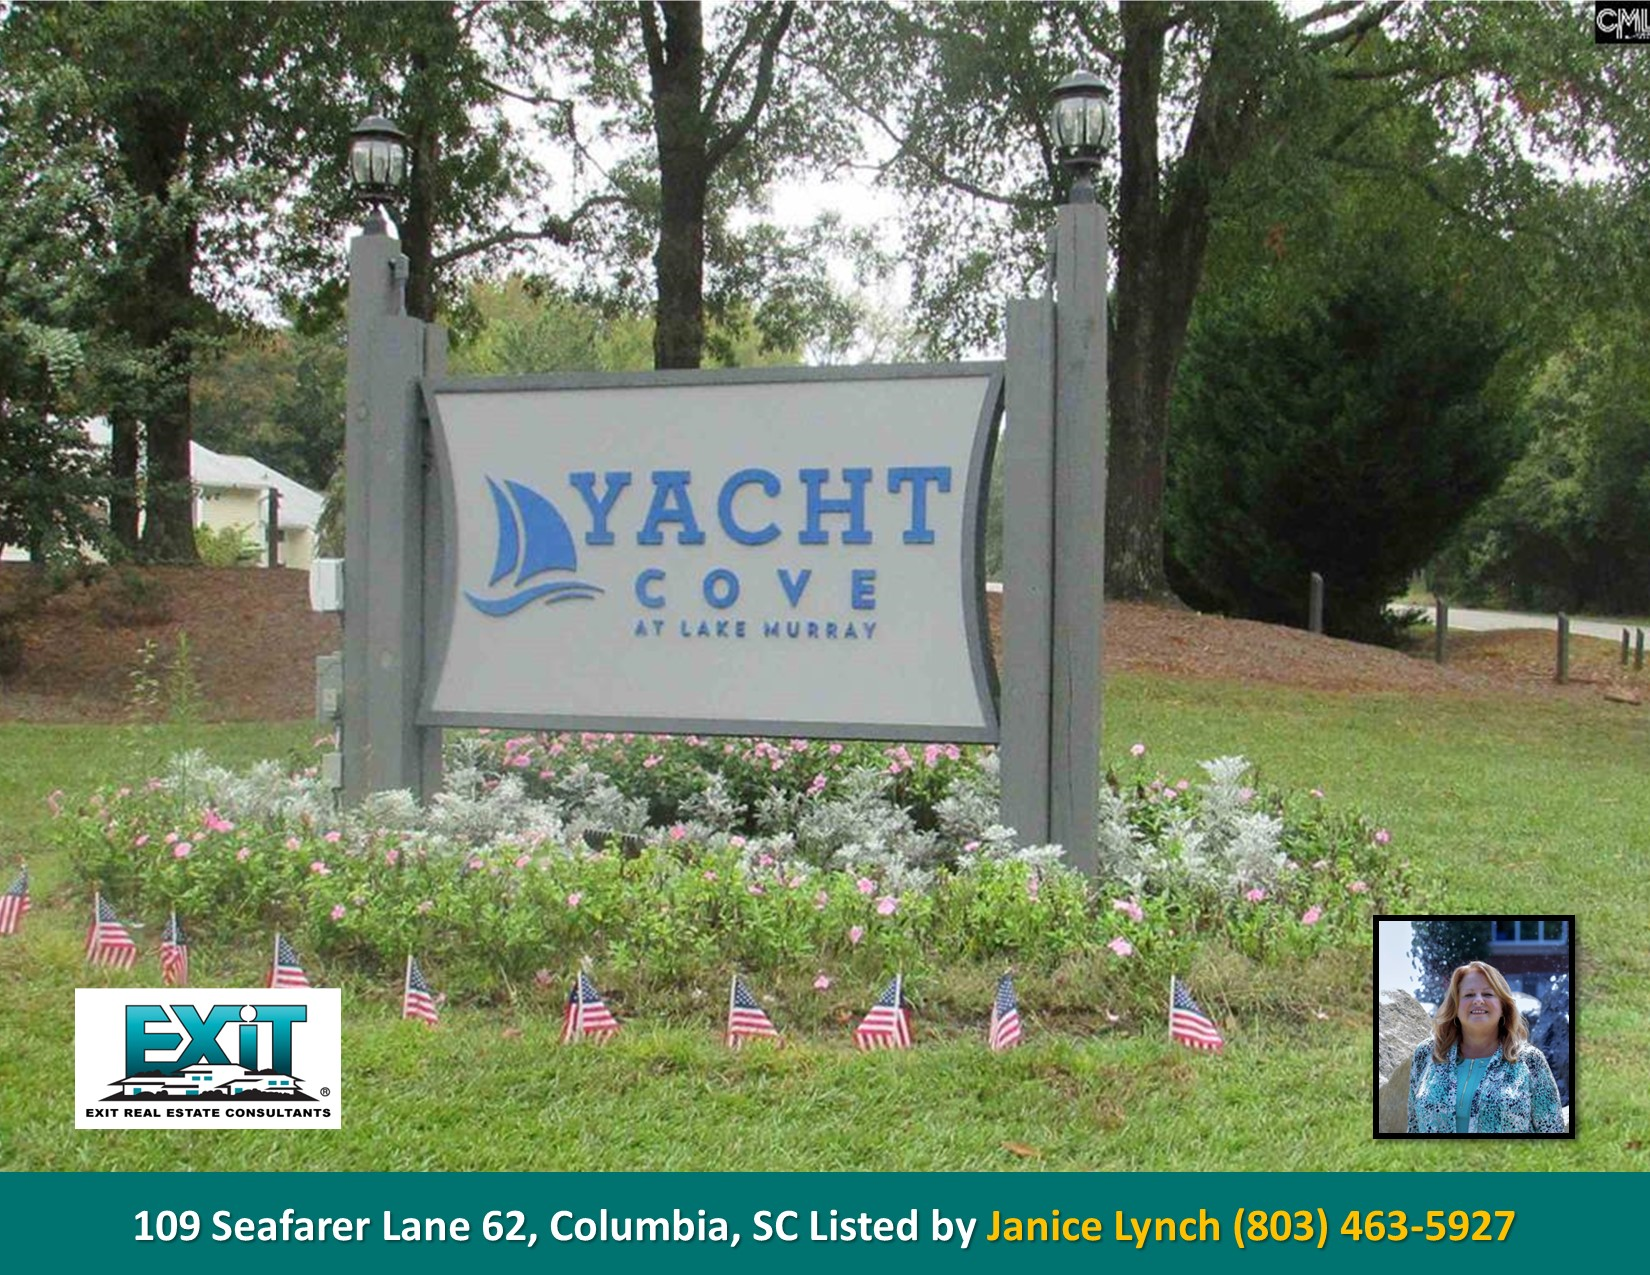 Just listed in Yacht Cove